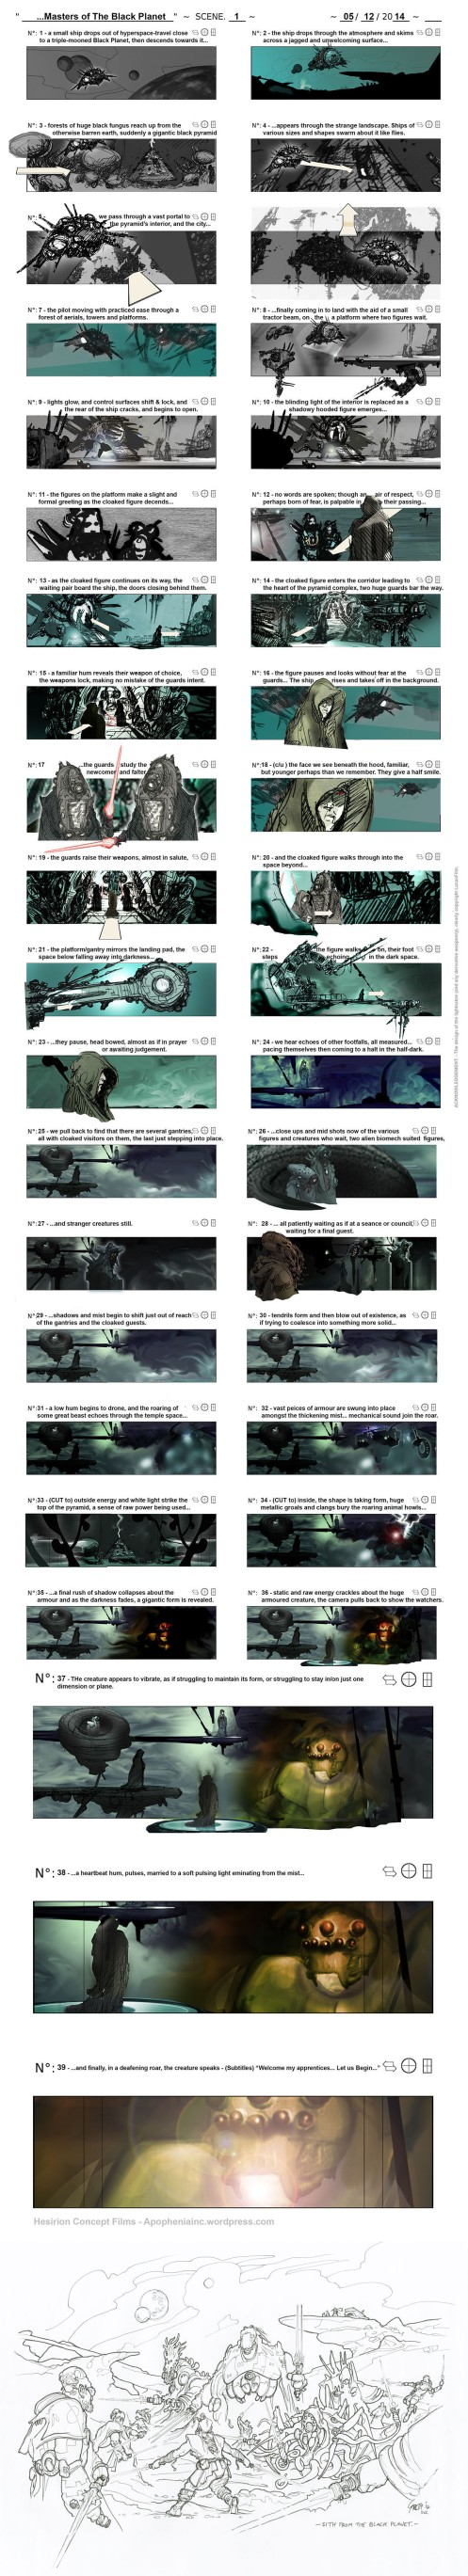 whole-sequence-black-planet-storyboard-0011